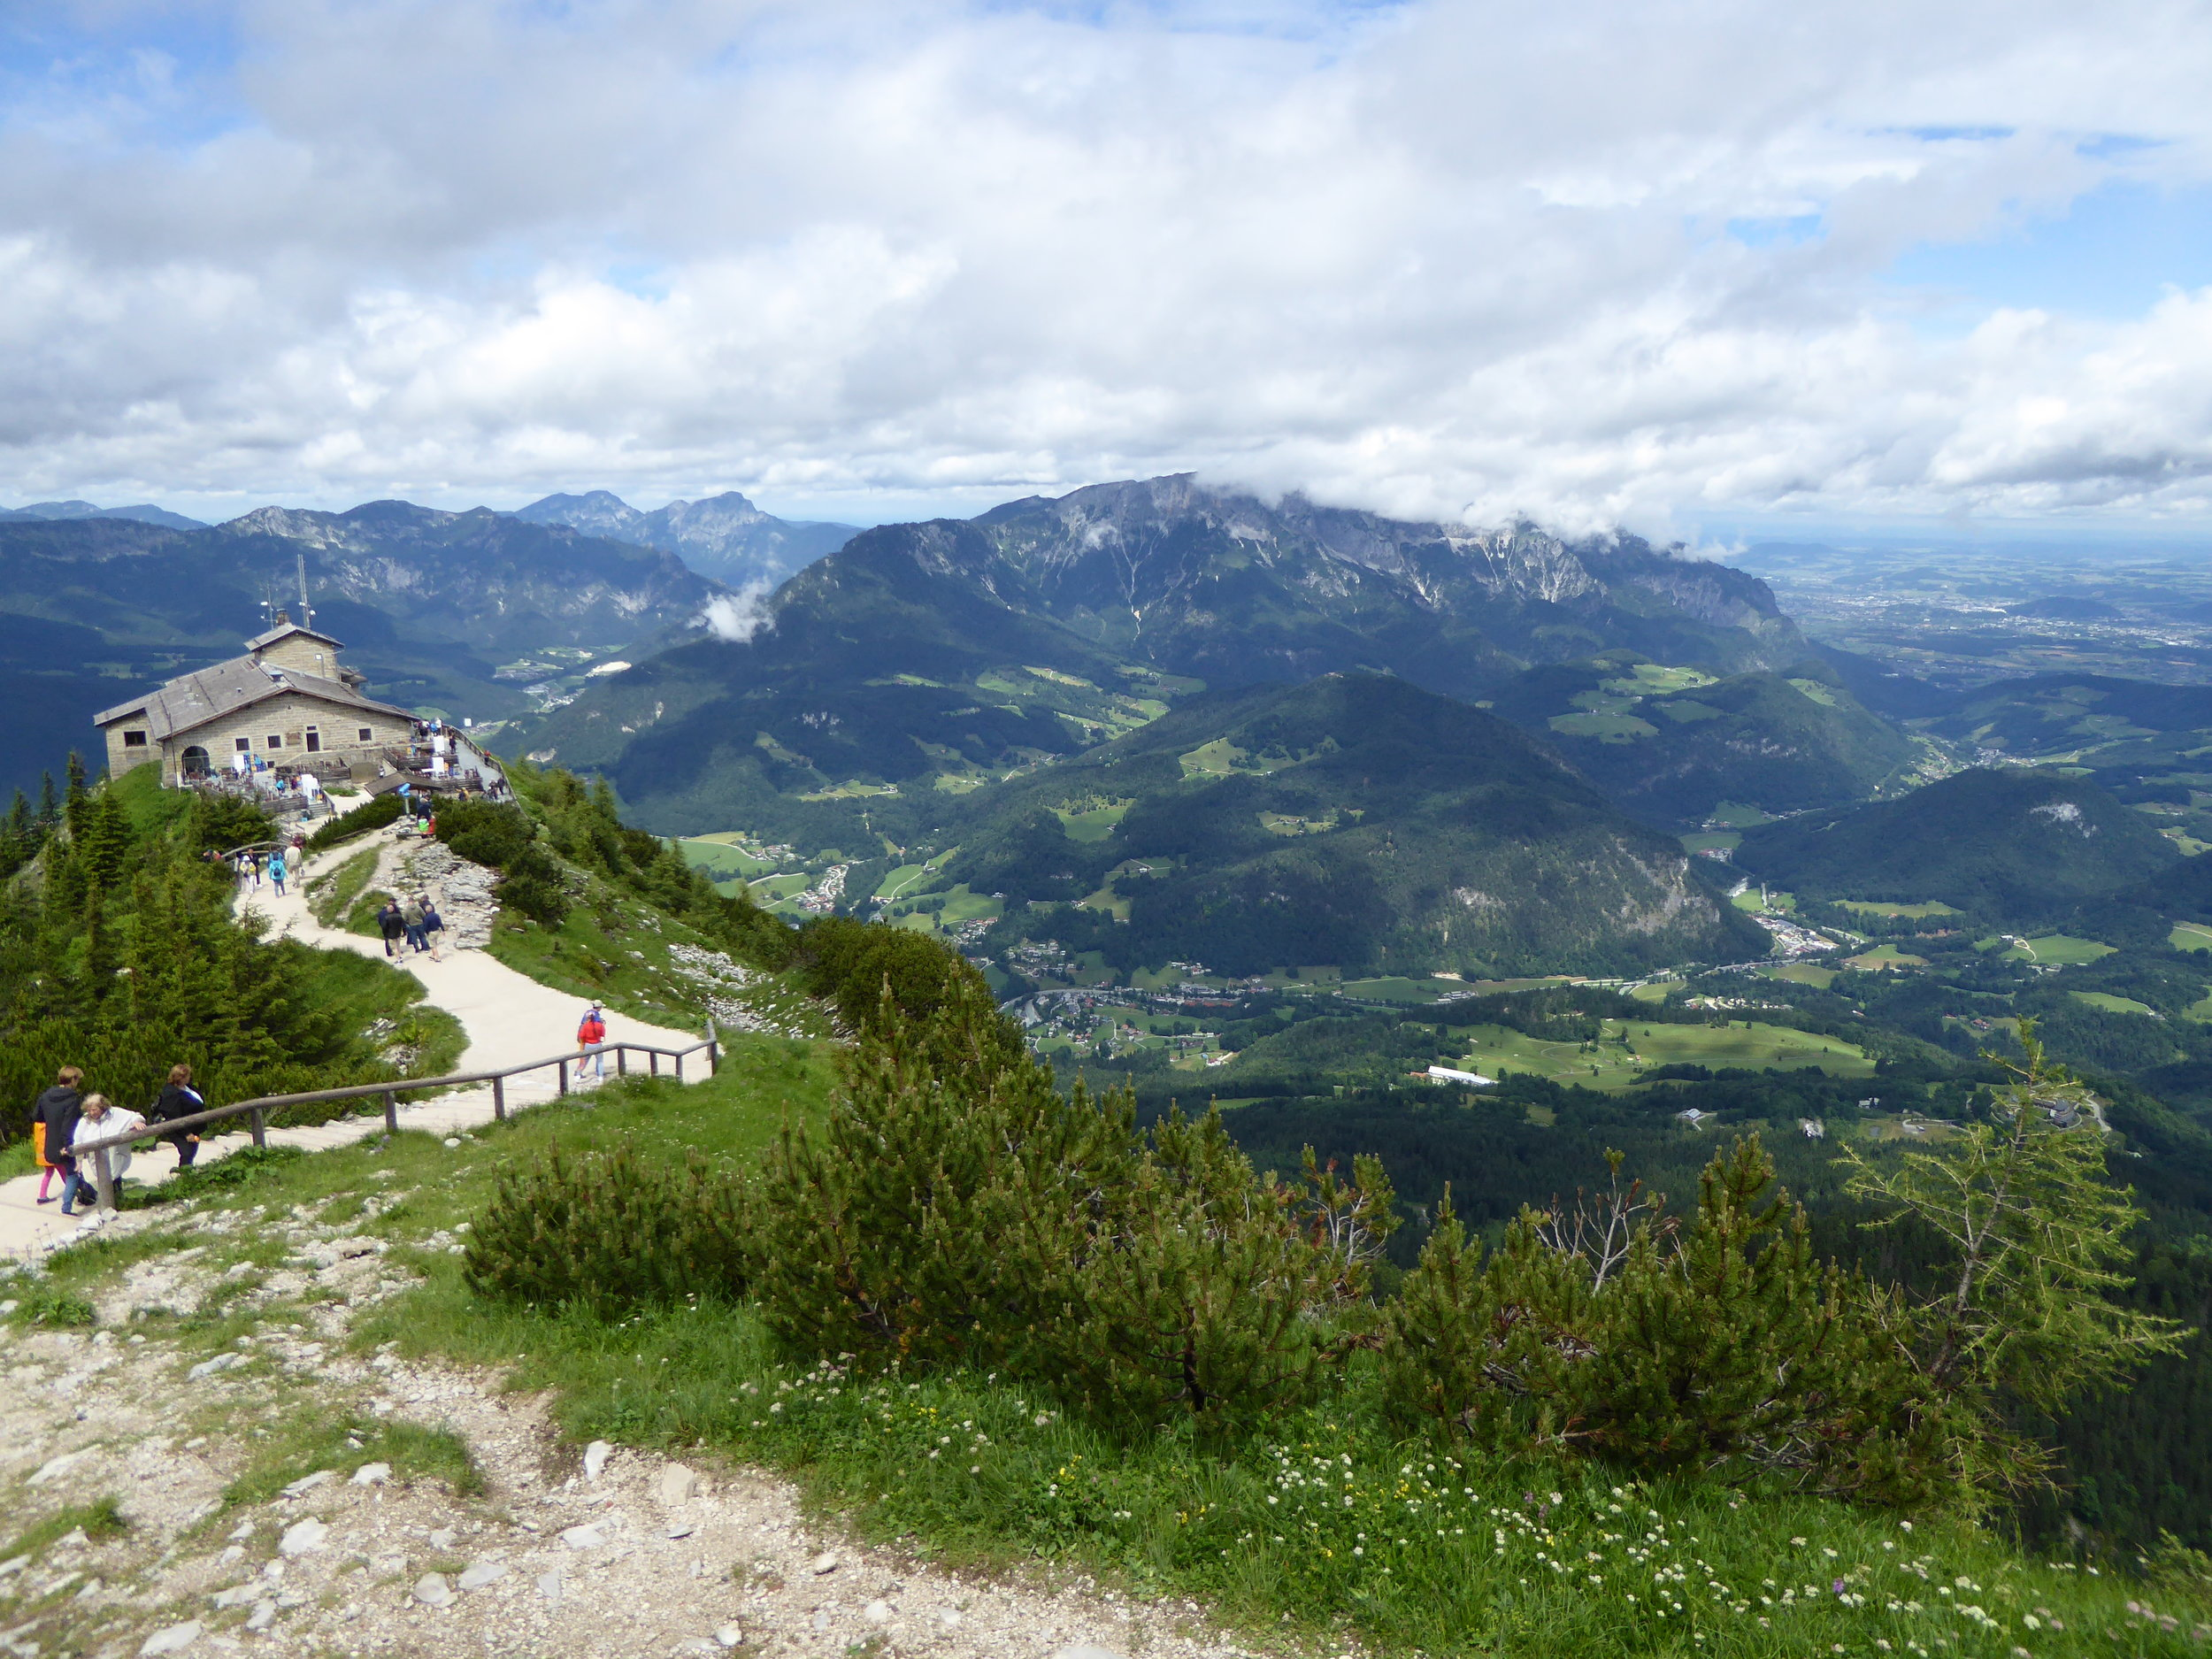 The Eagle's Nest (The Kehlsteinhaus)